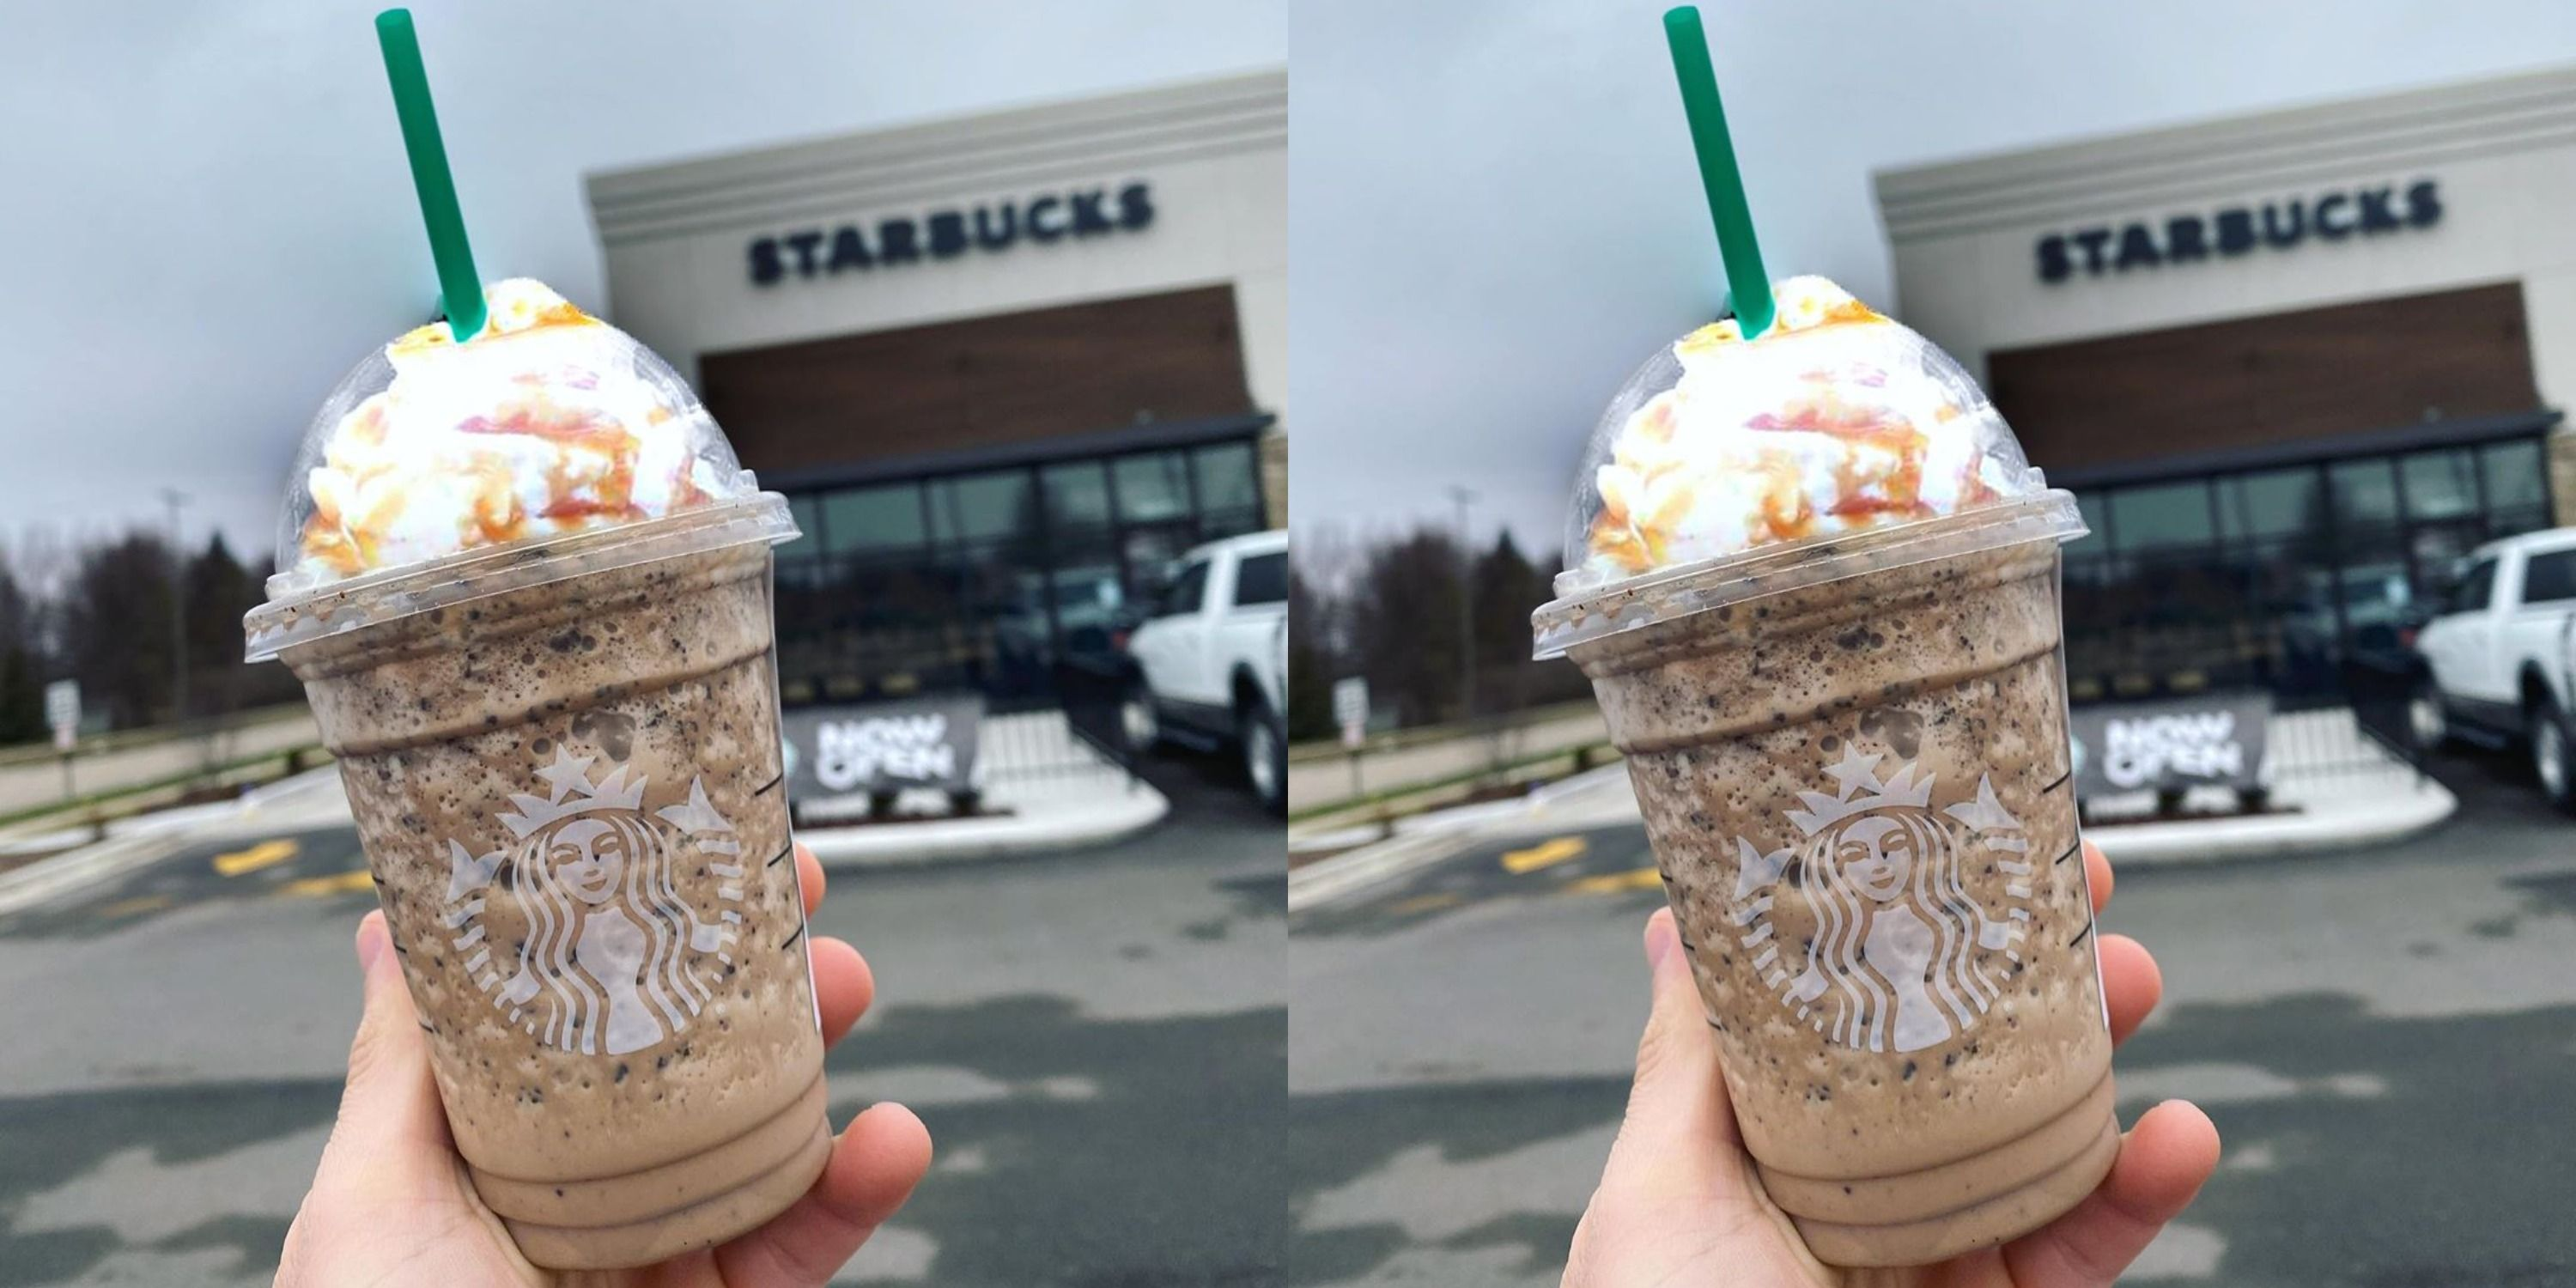 How To Order A Cadbury Creme Egg Frappuccino From Starbucks